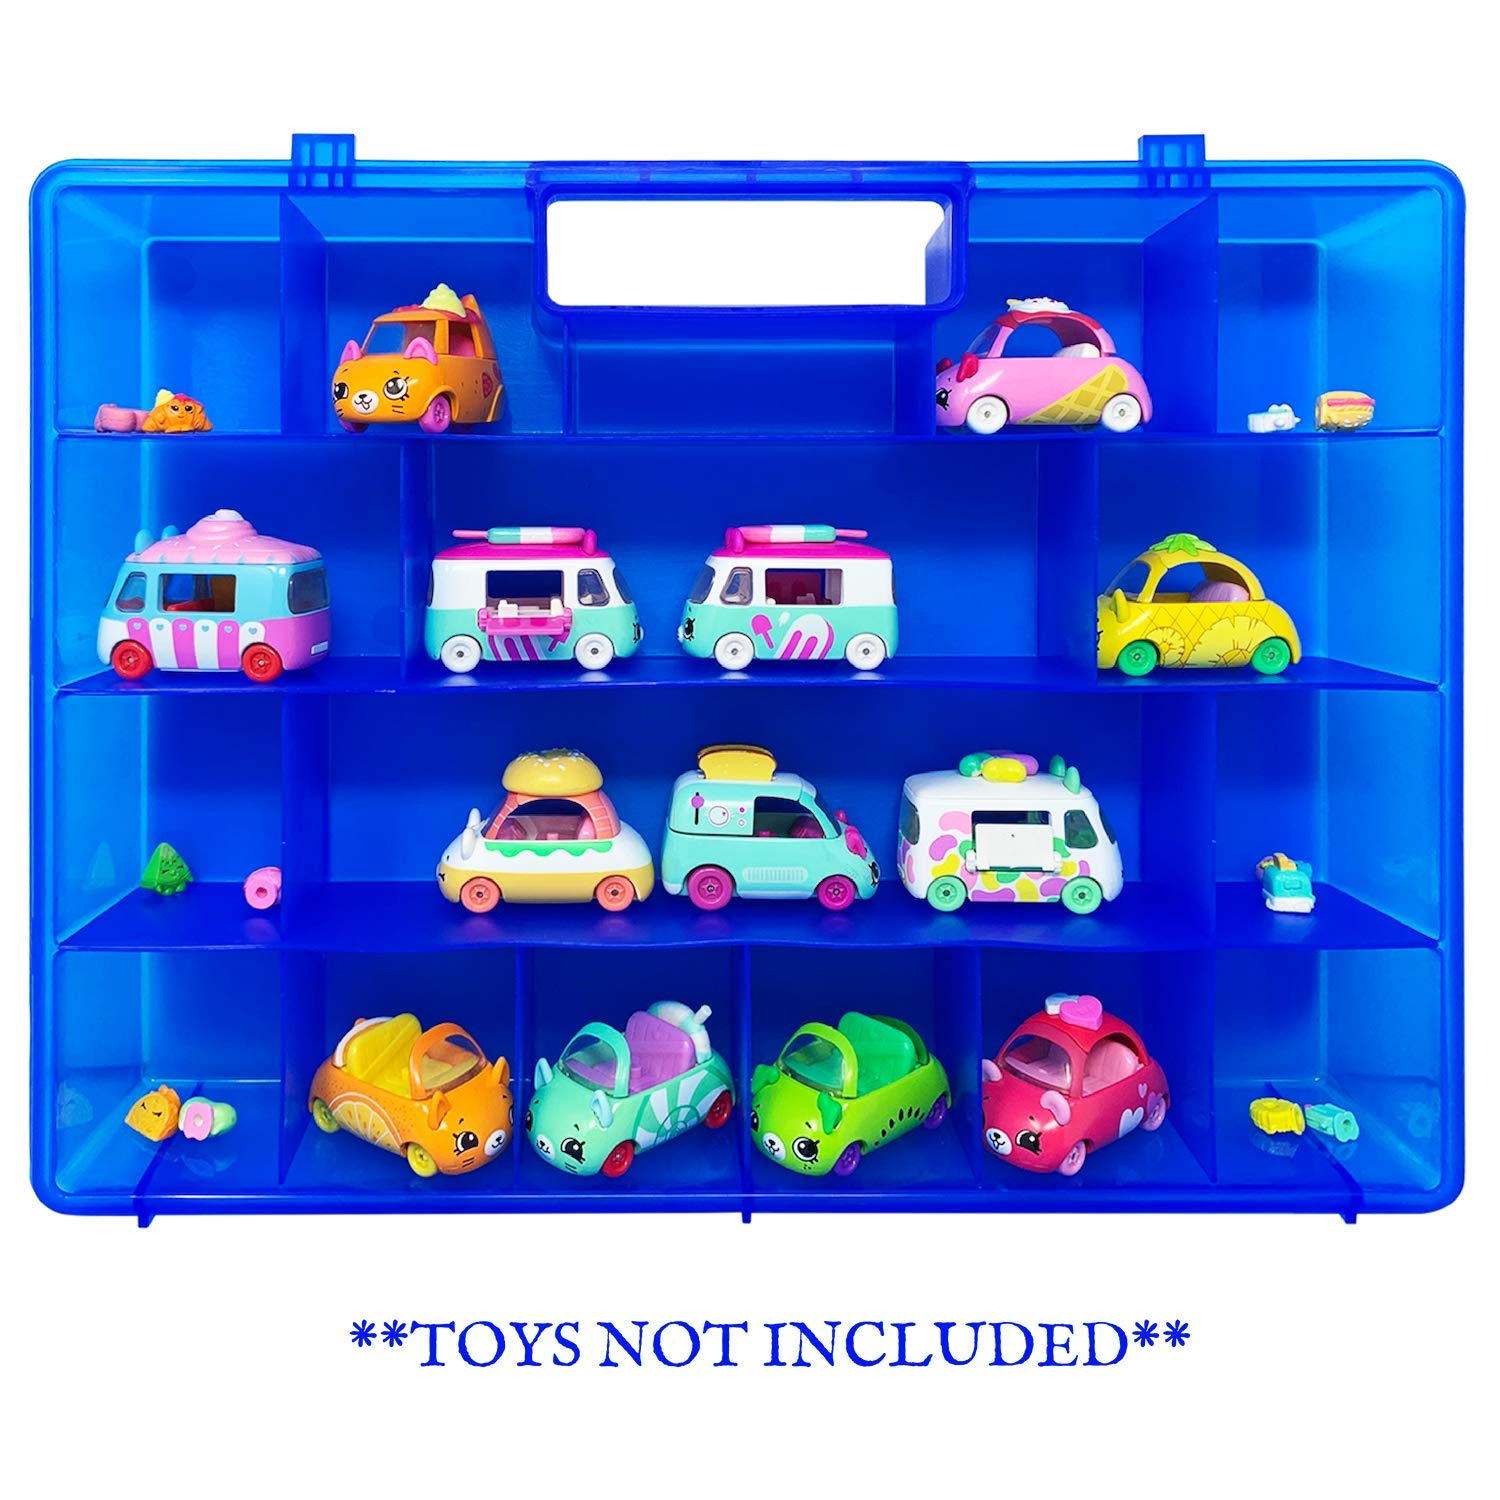 Compatible Carrying Case /& Toy Accessory for Shopkins Cutie Cars Not Created by Shopkins Life Made Better Blue Toy Storage Organization Box